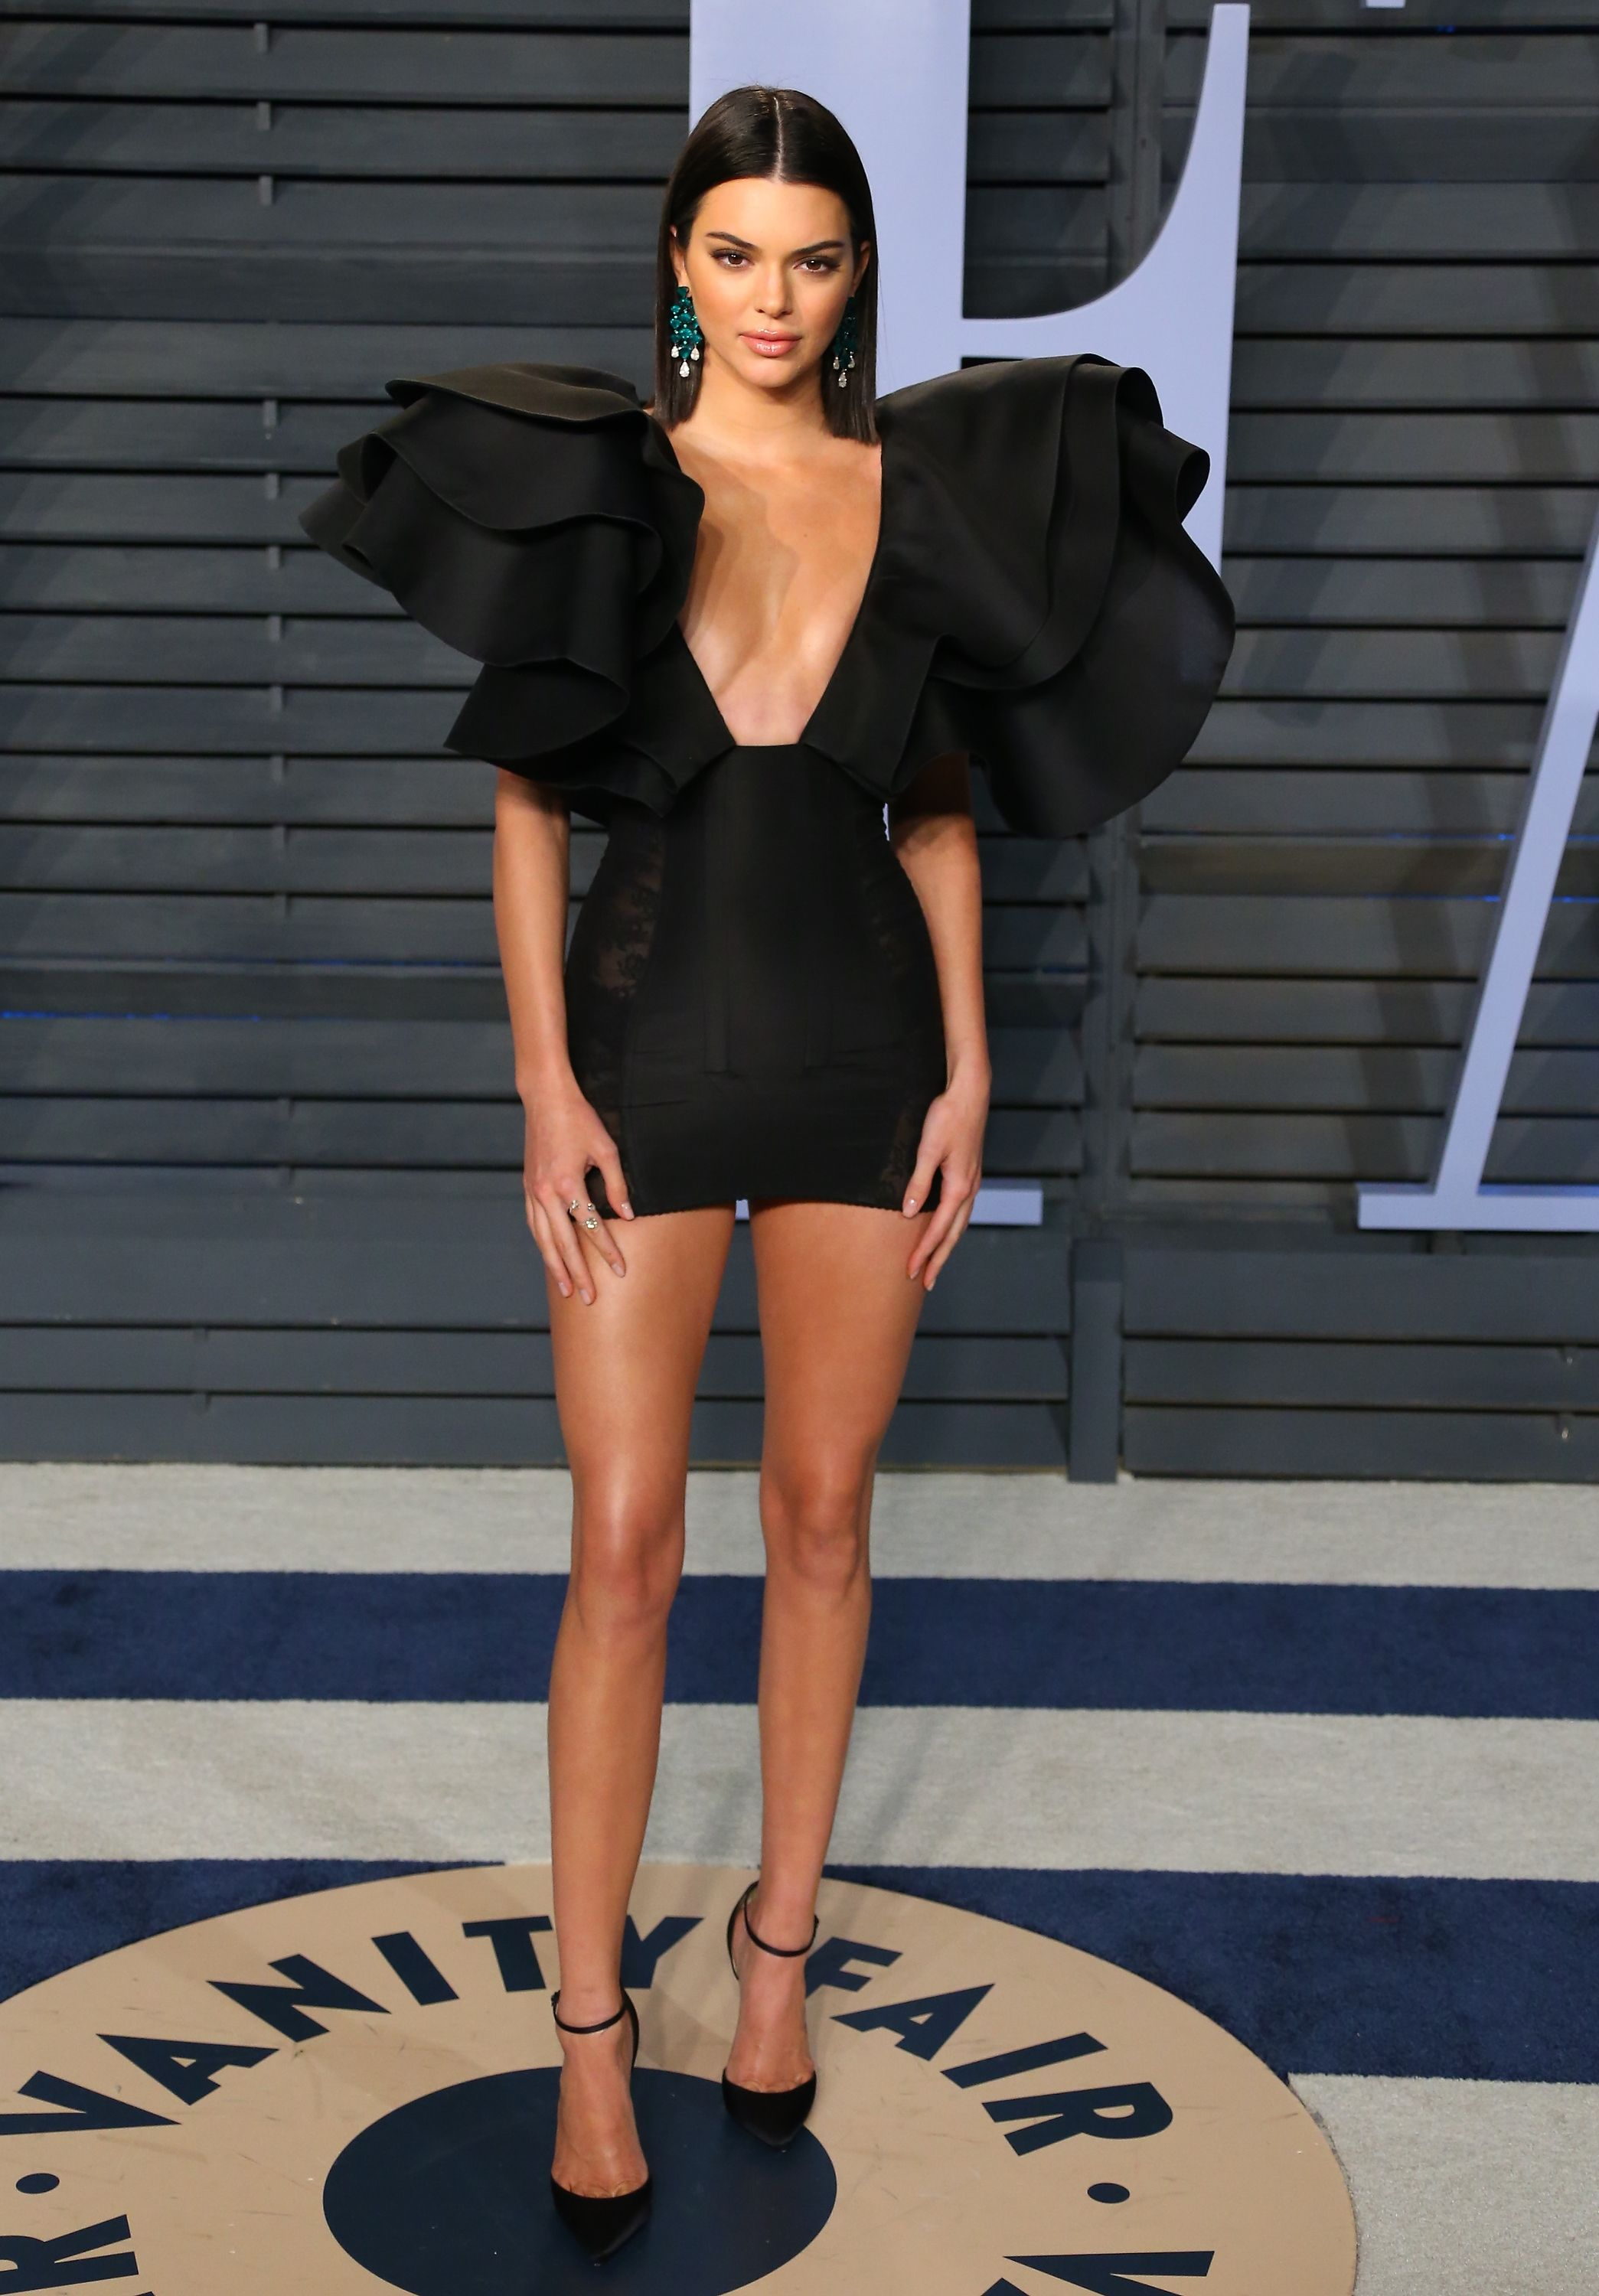 198a45a29c0 Kendall Jenner s Most Naked Outfits - Kendall Jenner s Sexiest Dresses in  Pictures